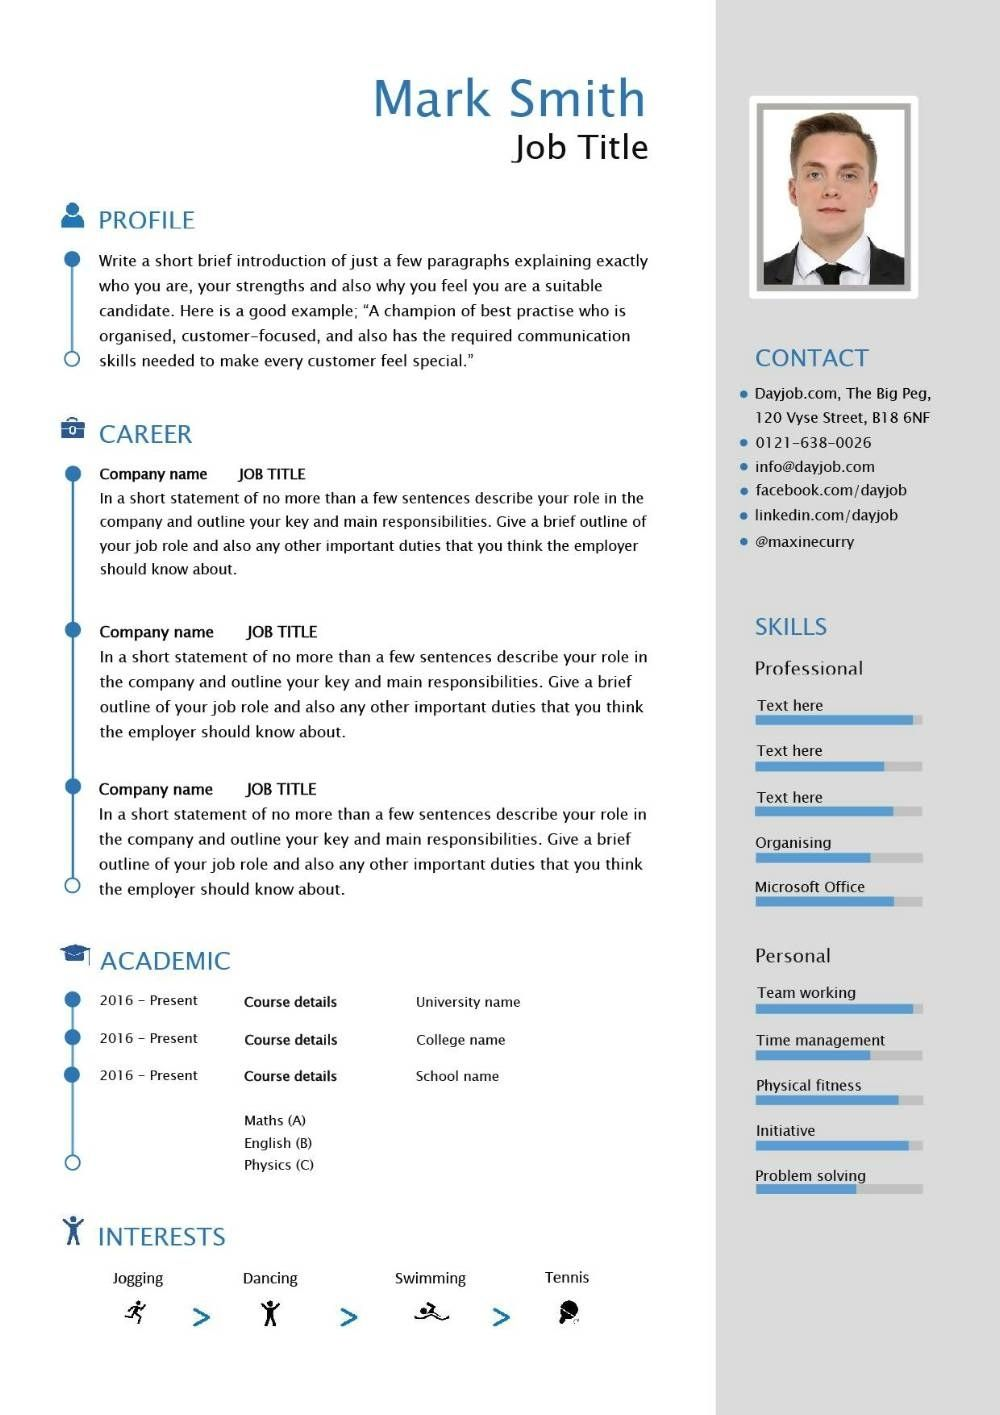 Cv Template Europe Curriculum vitae format, Resume